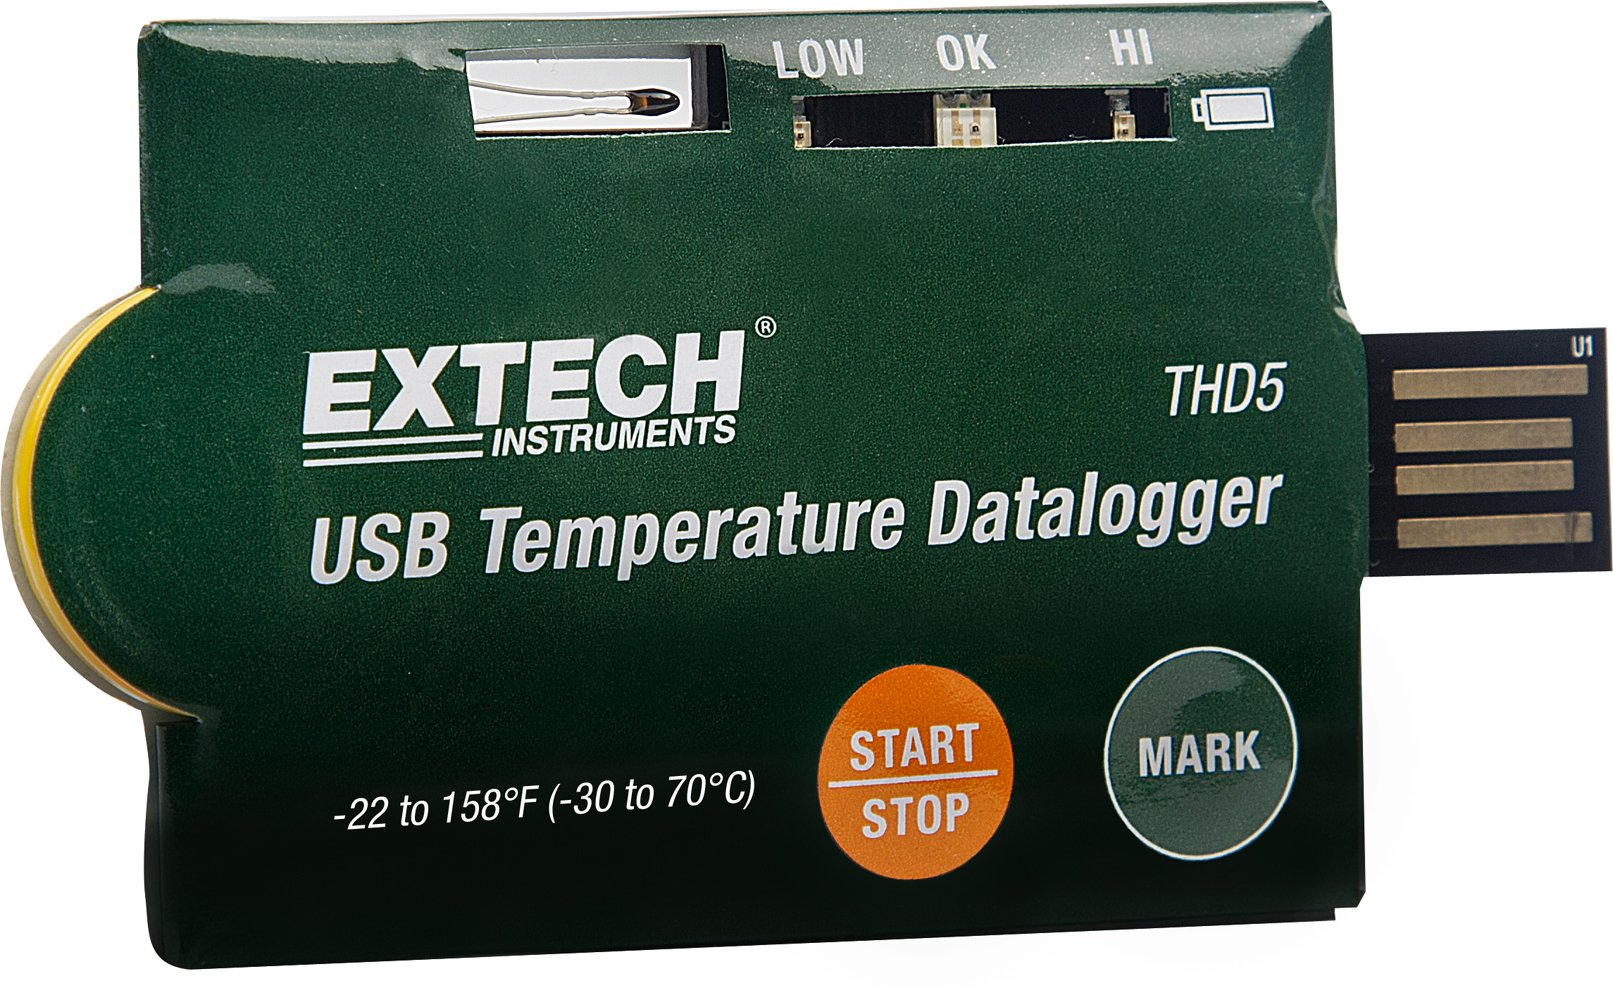 Extech THD5 USB Temperature Dataloggers (Pack of 10)